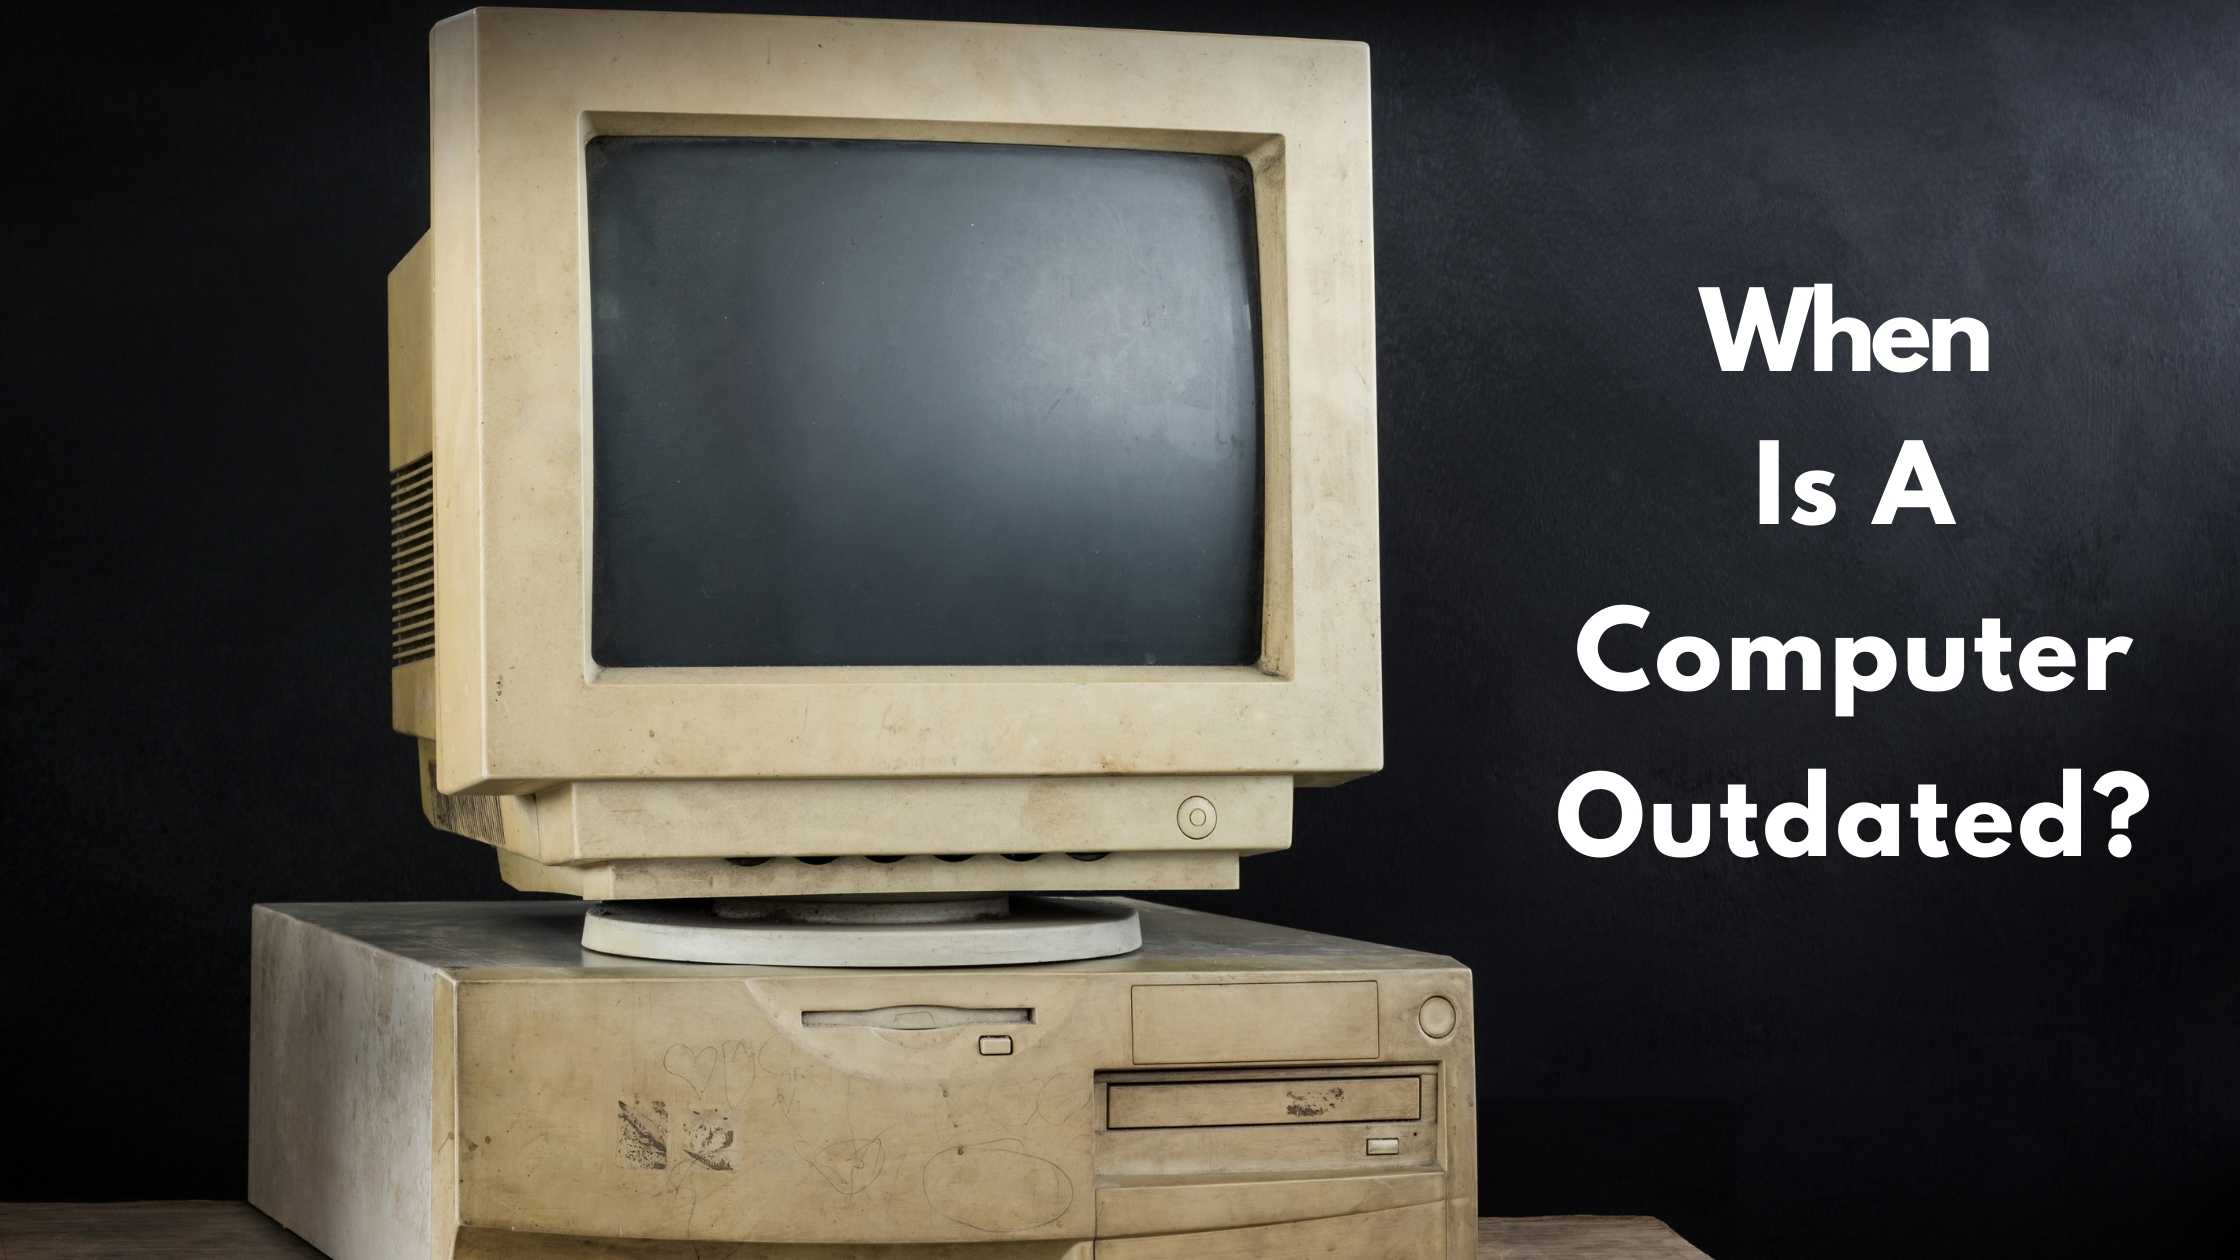 When is a computer outdated